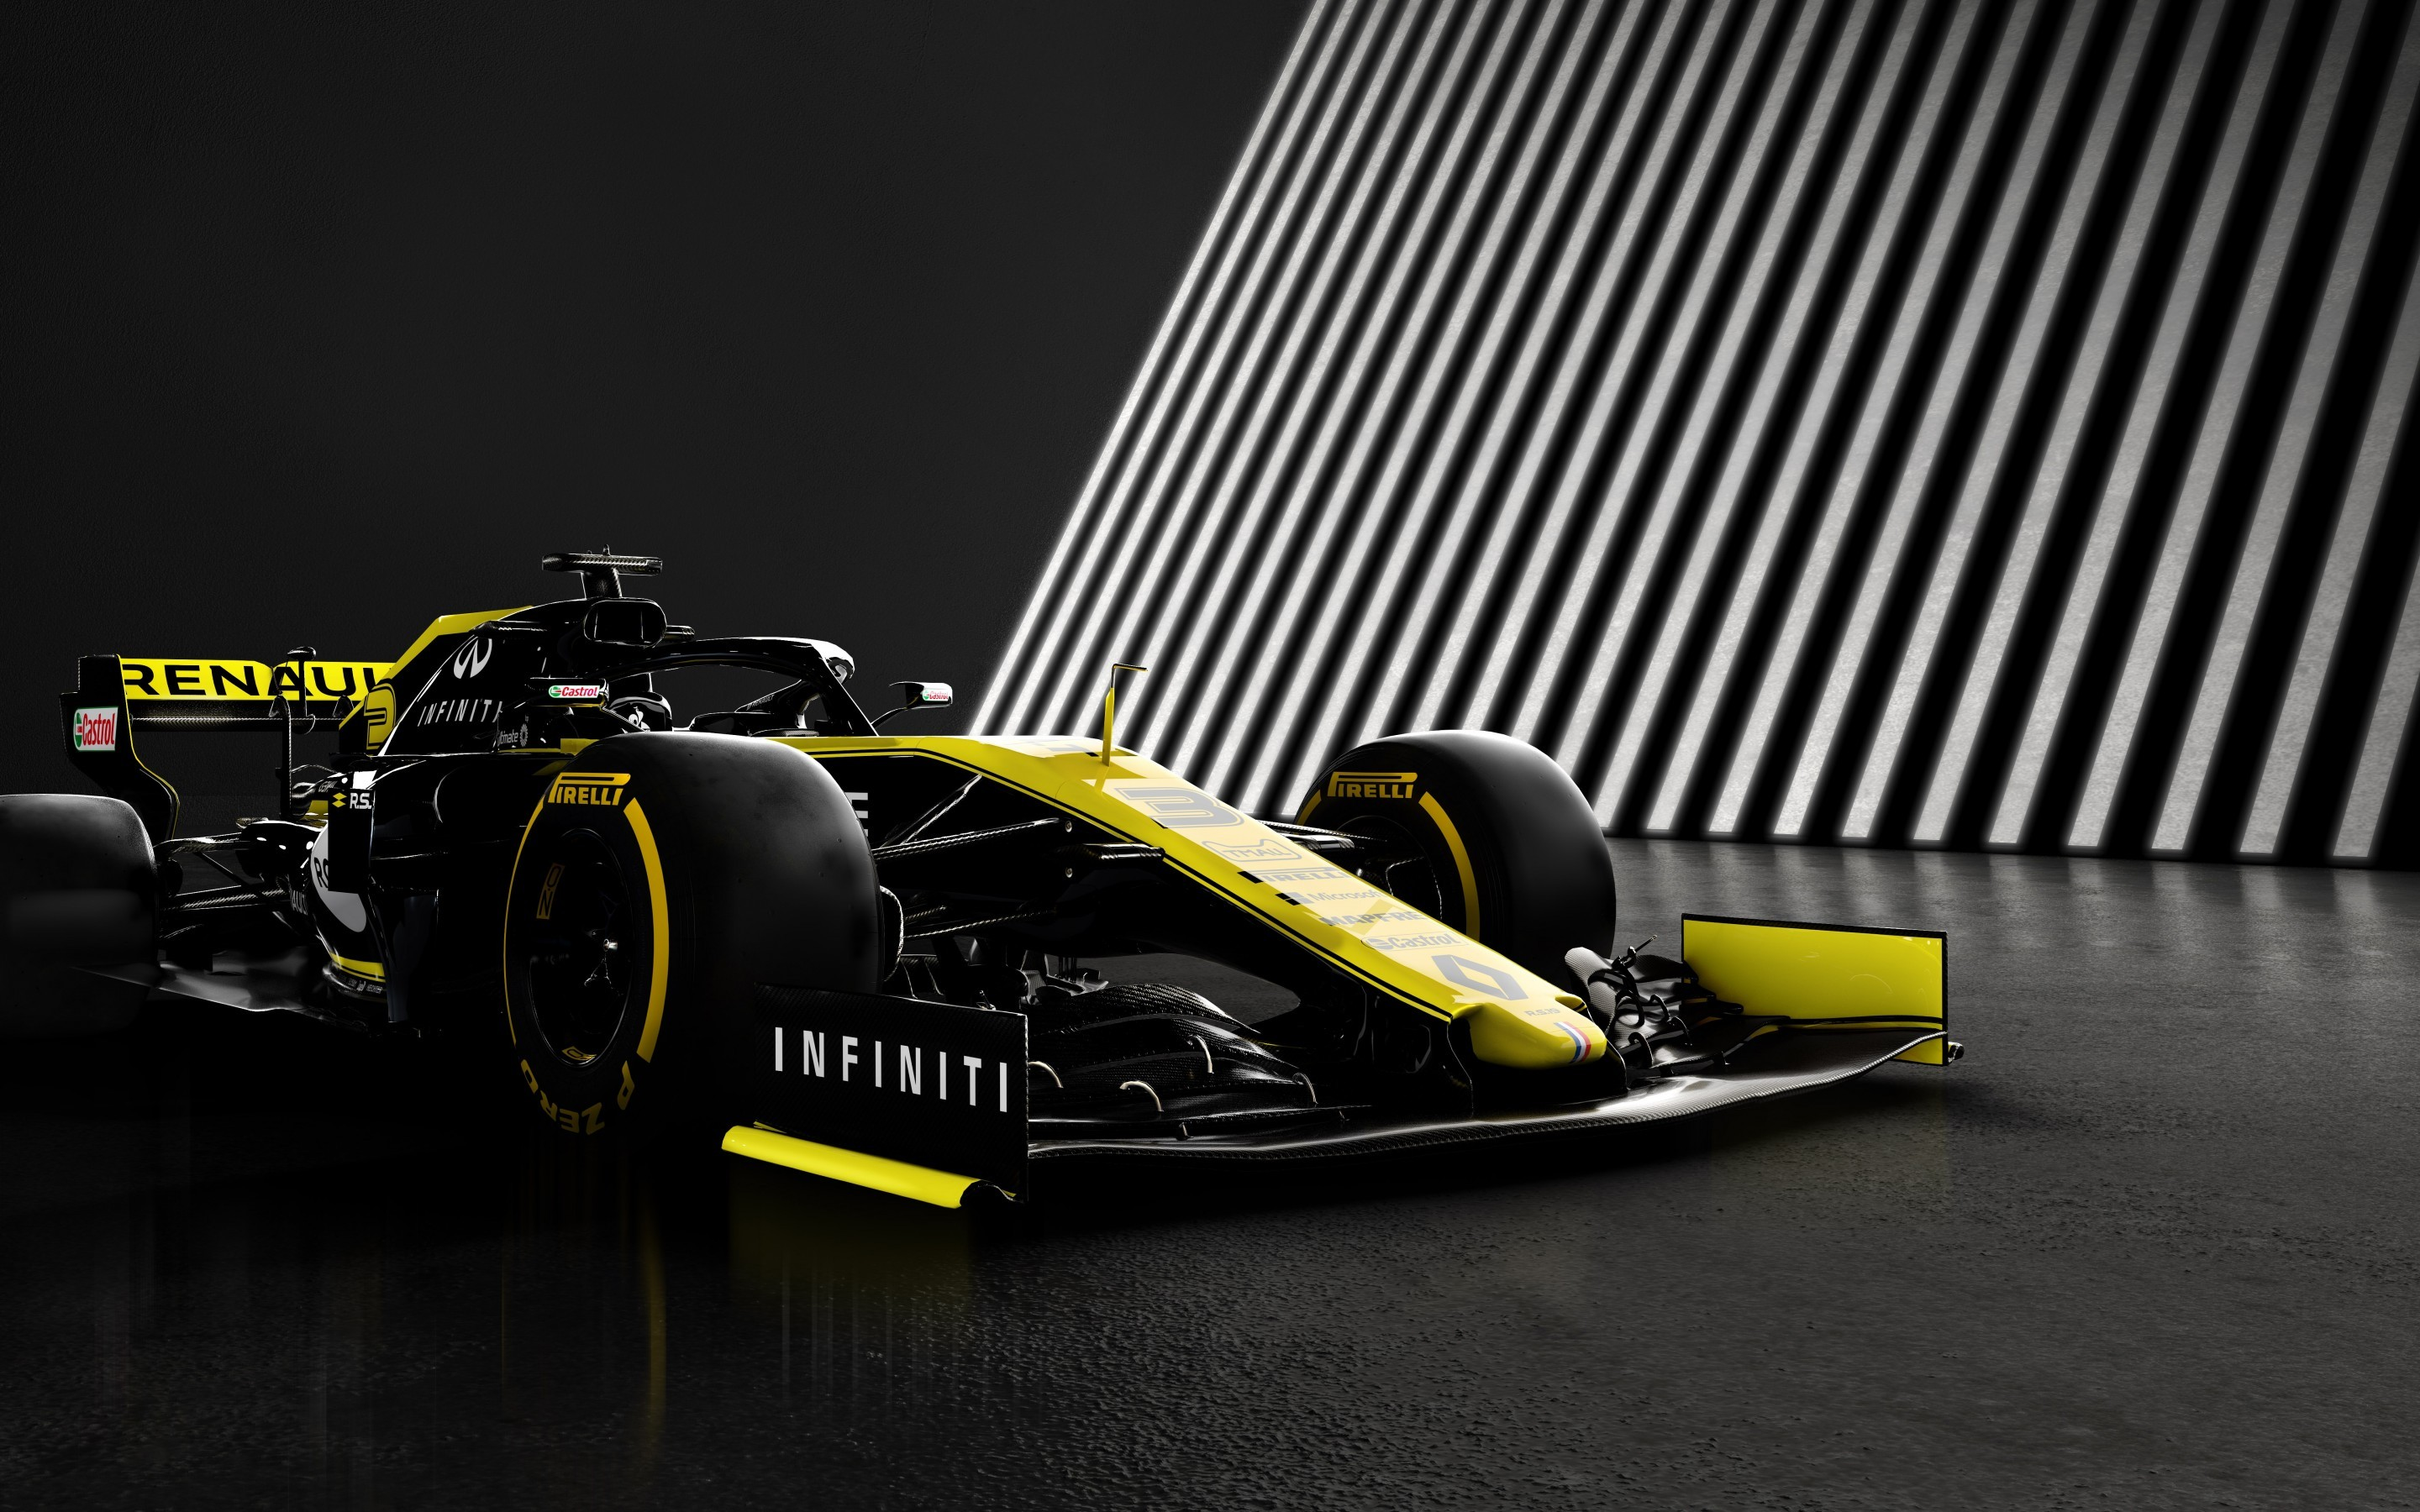 Download 2880x1800 Formula 1 Renault Rs19 Racing Cars Yellow 2880x1800